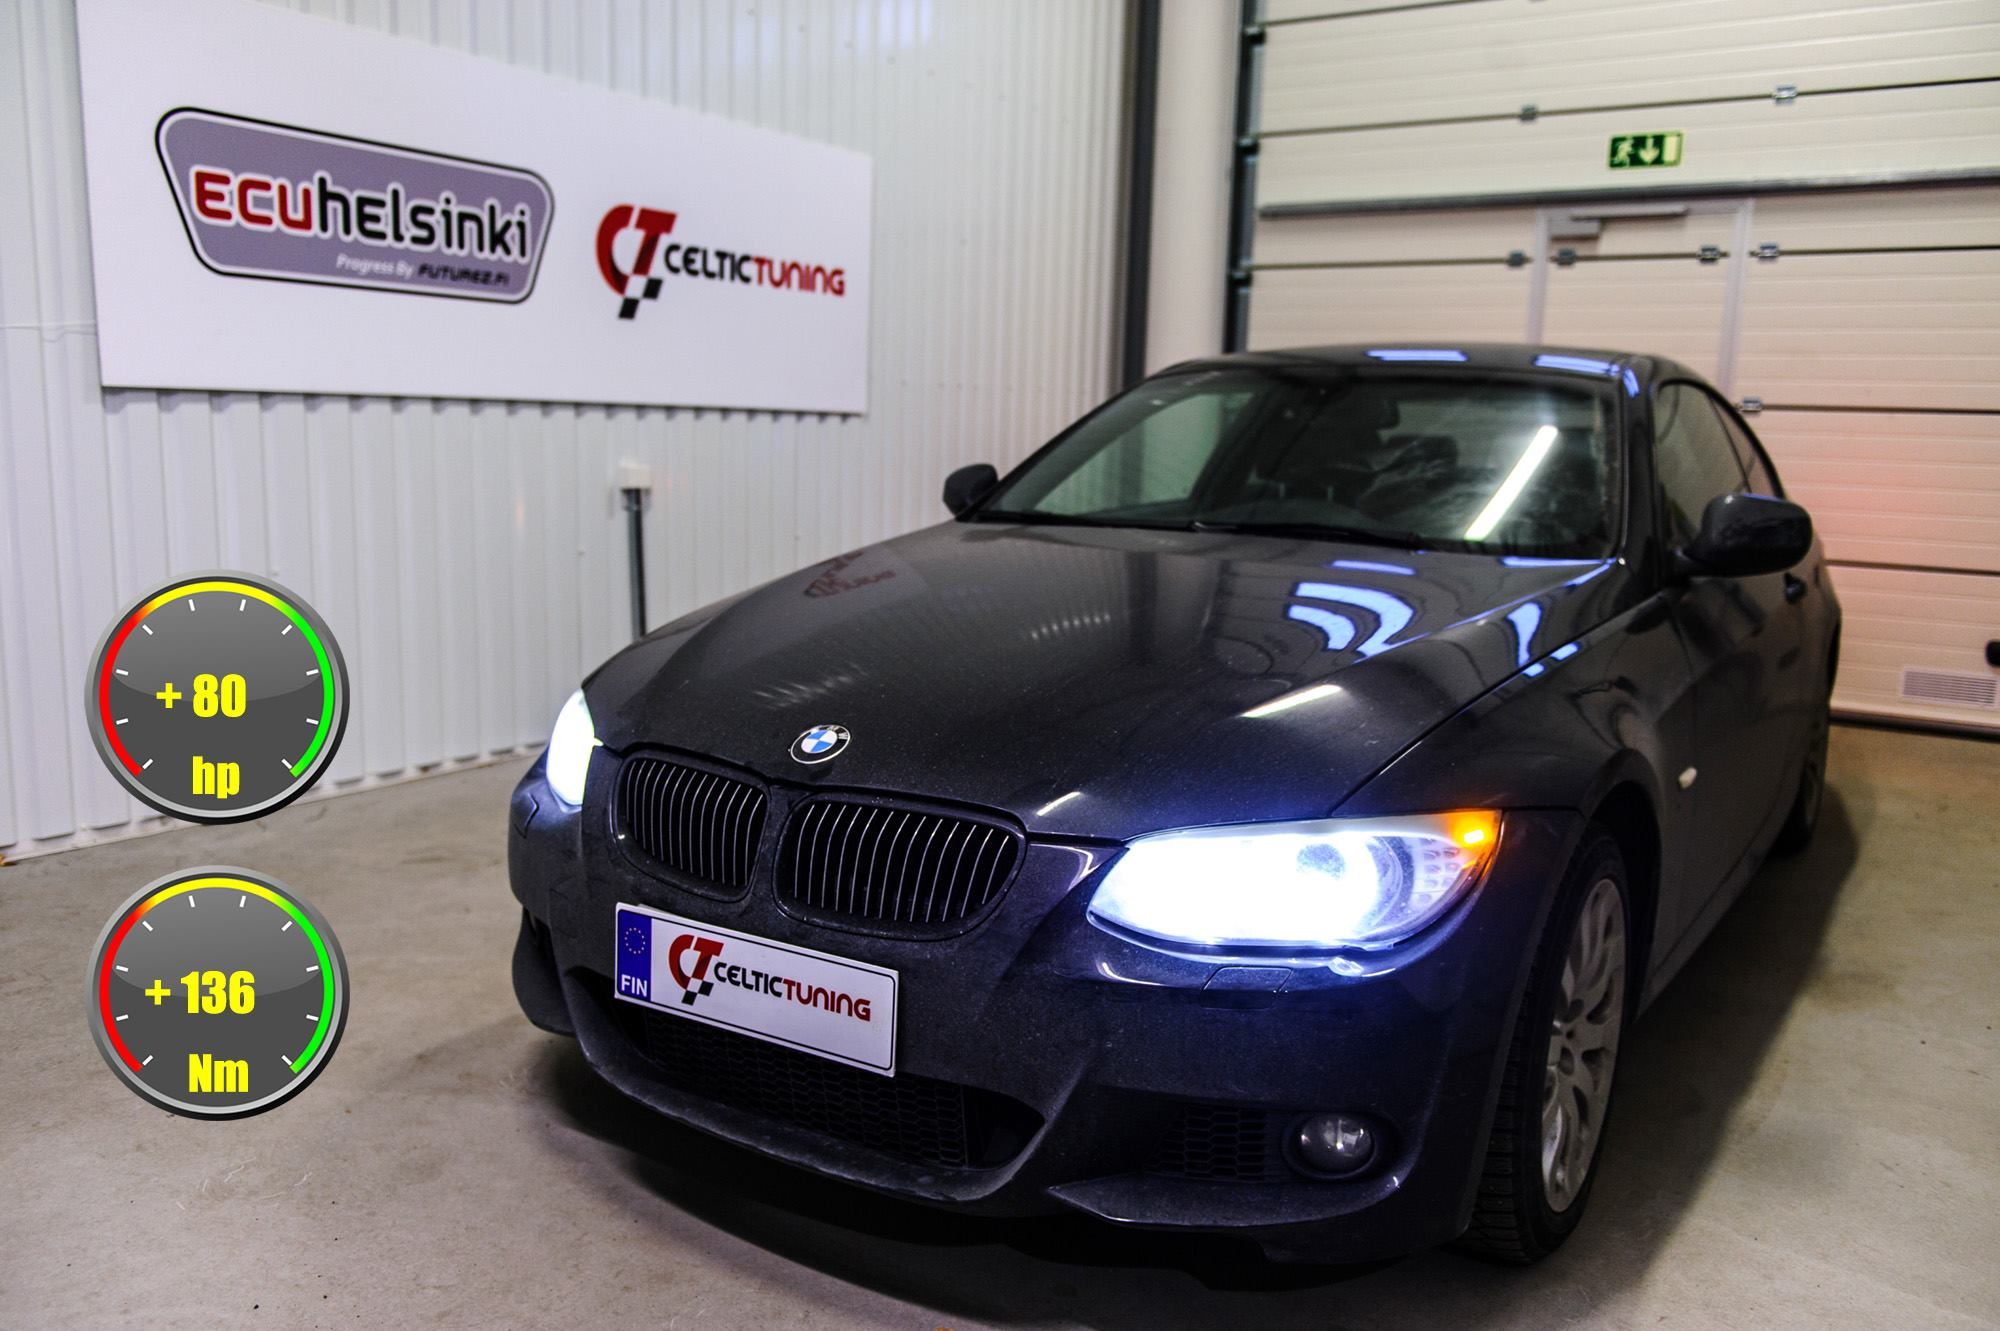 BMW 335i N55 optimointi celtic